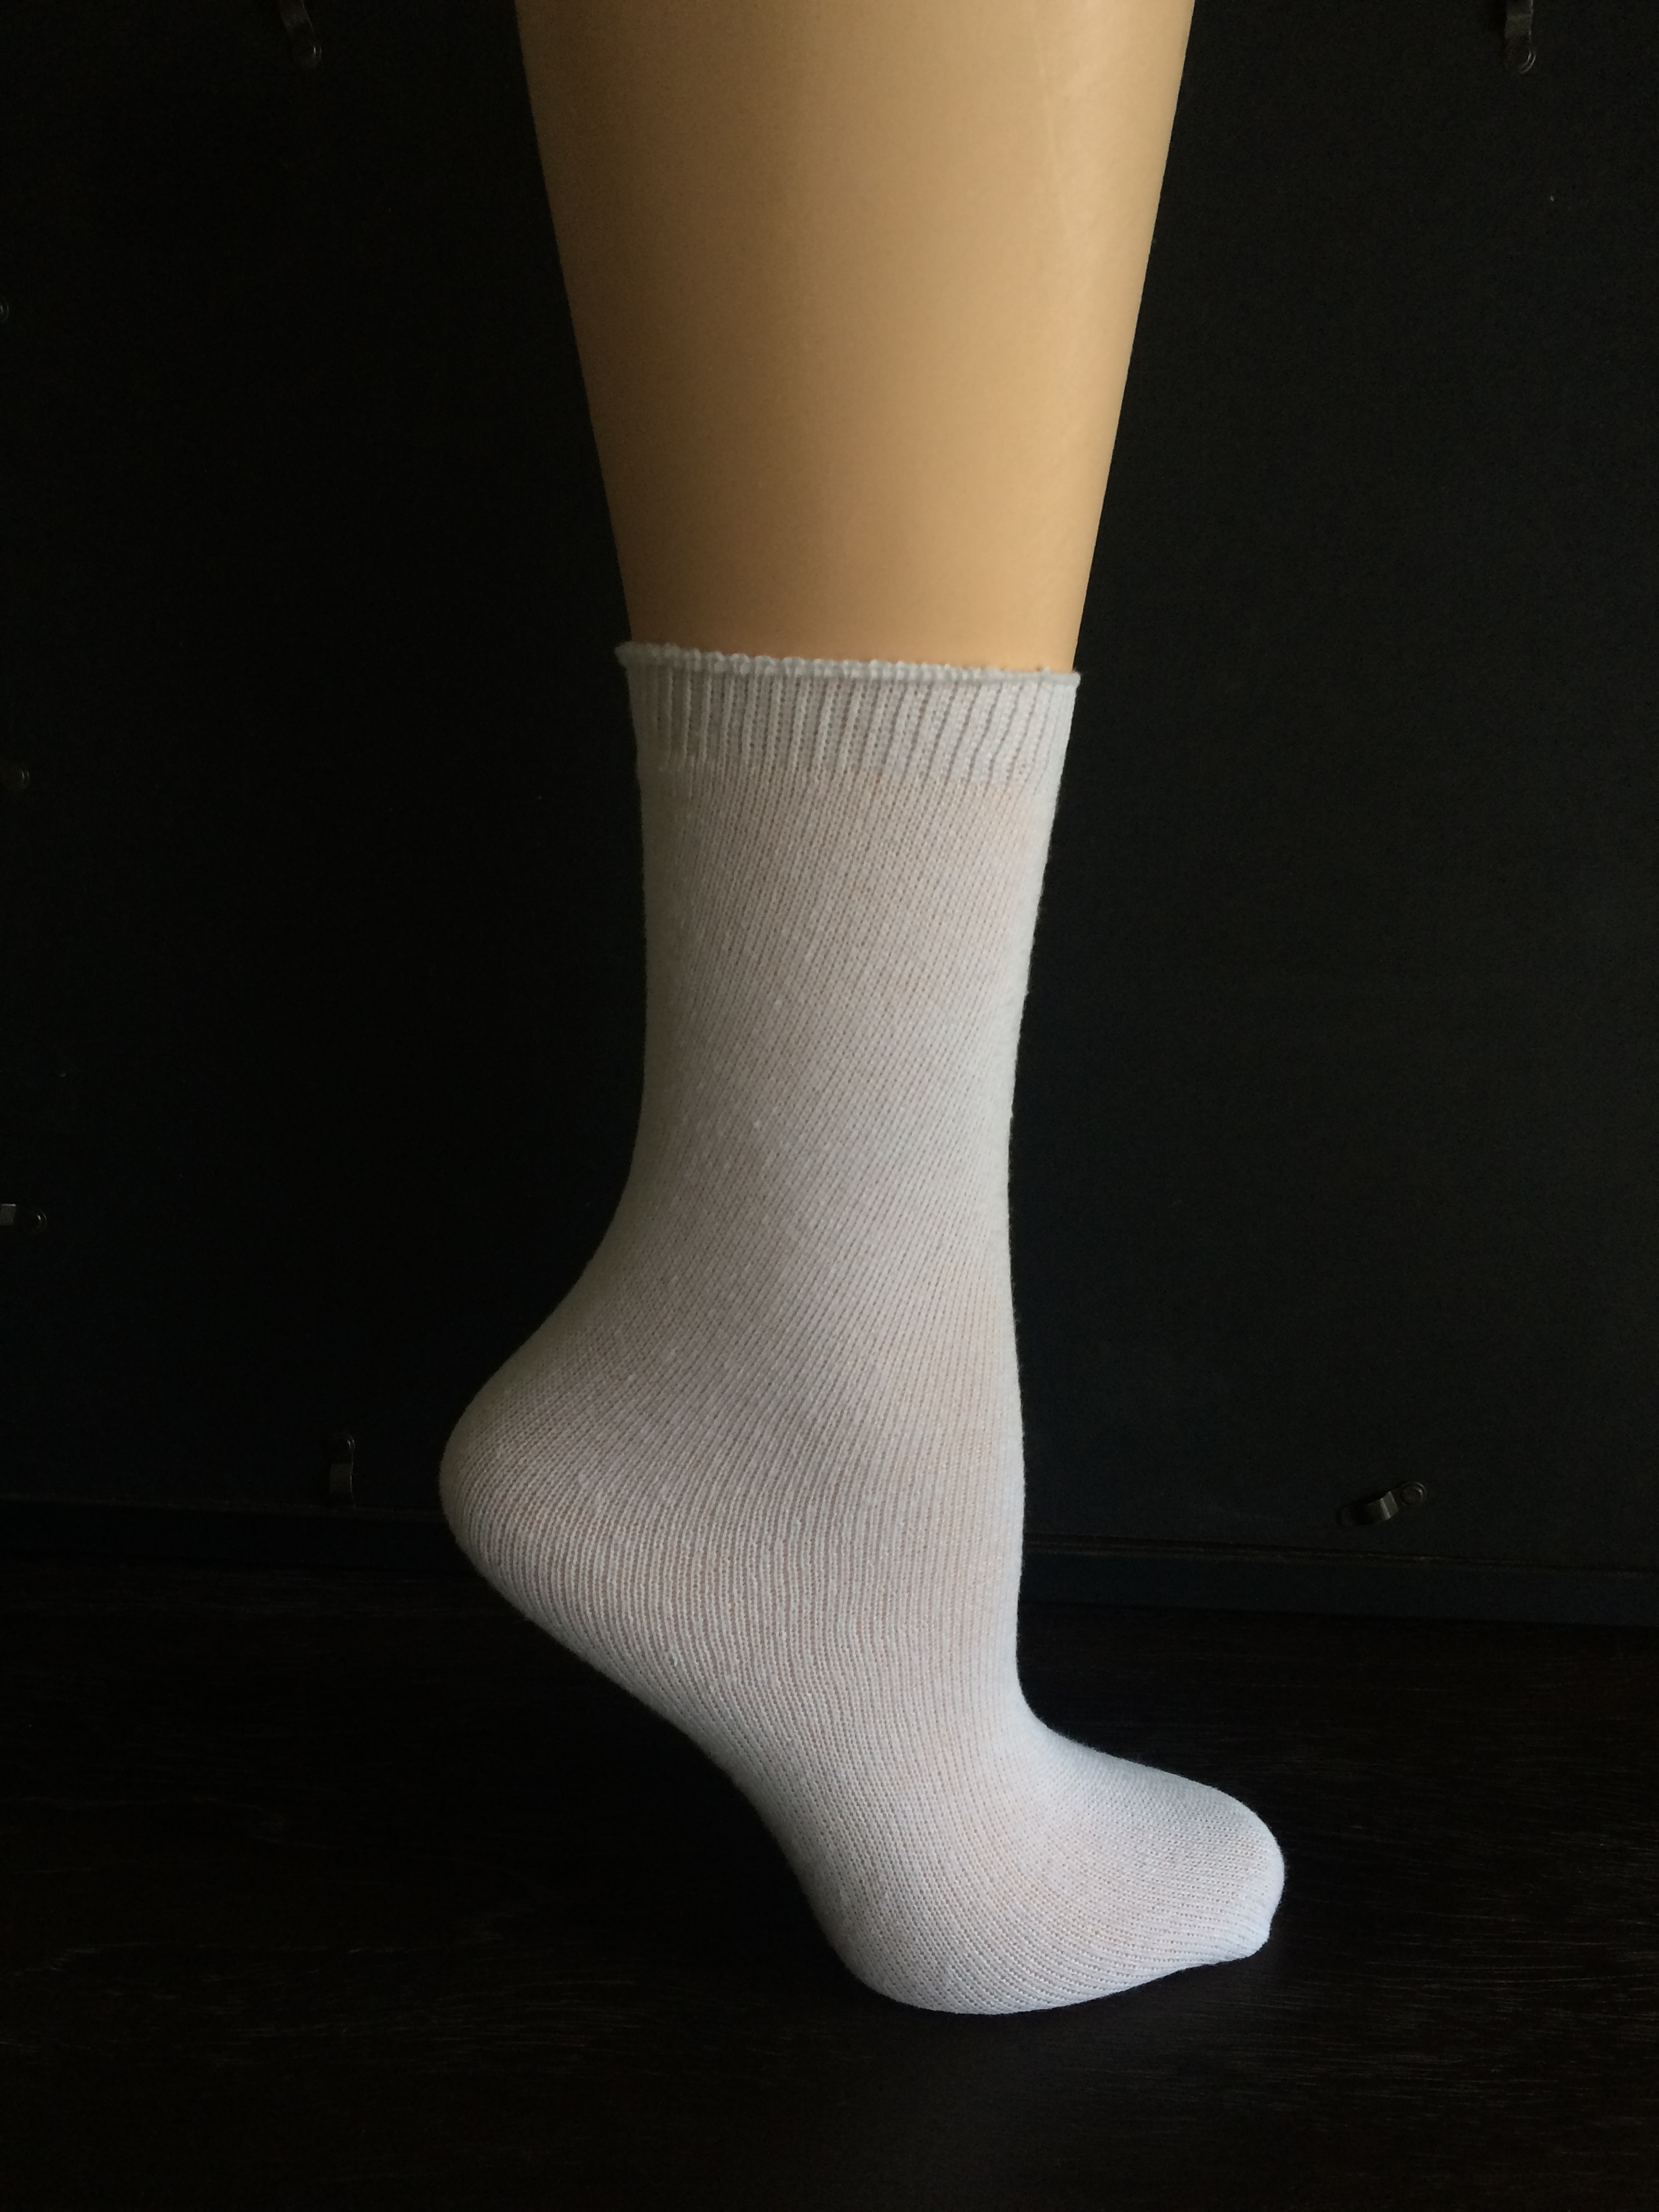 Surgical Sock